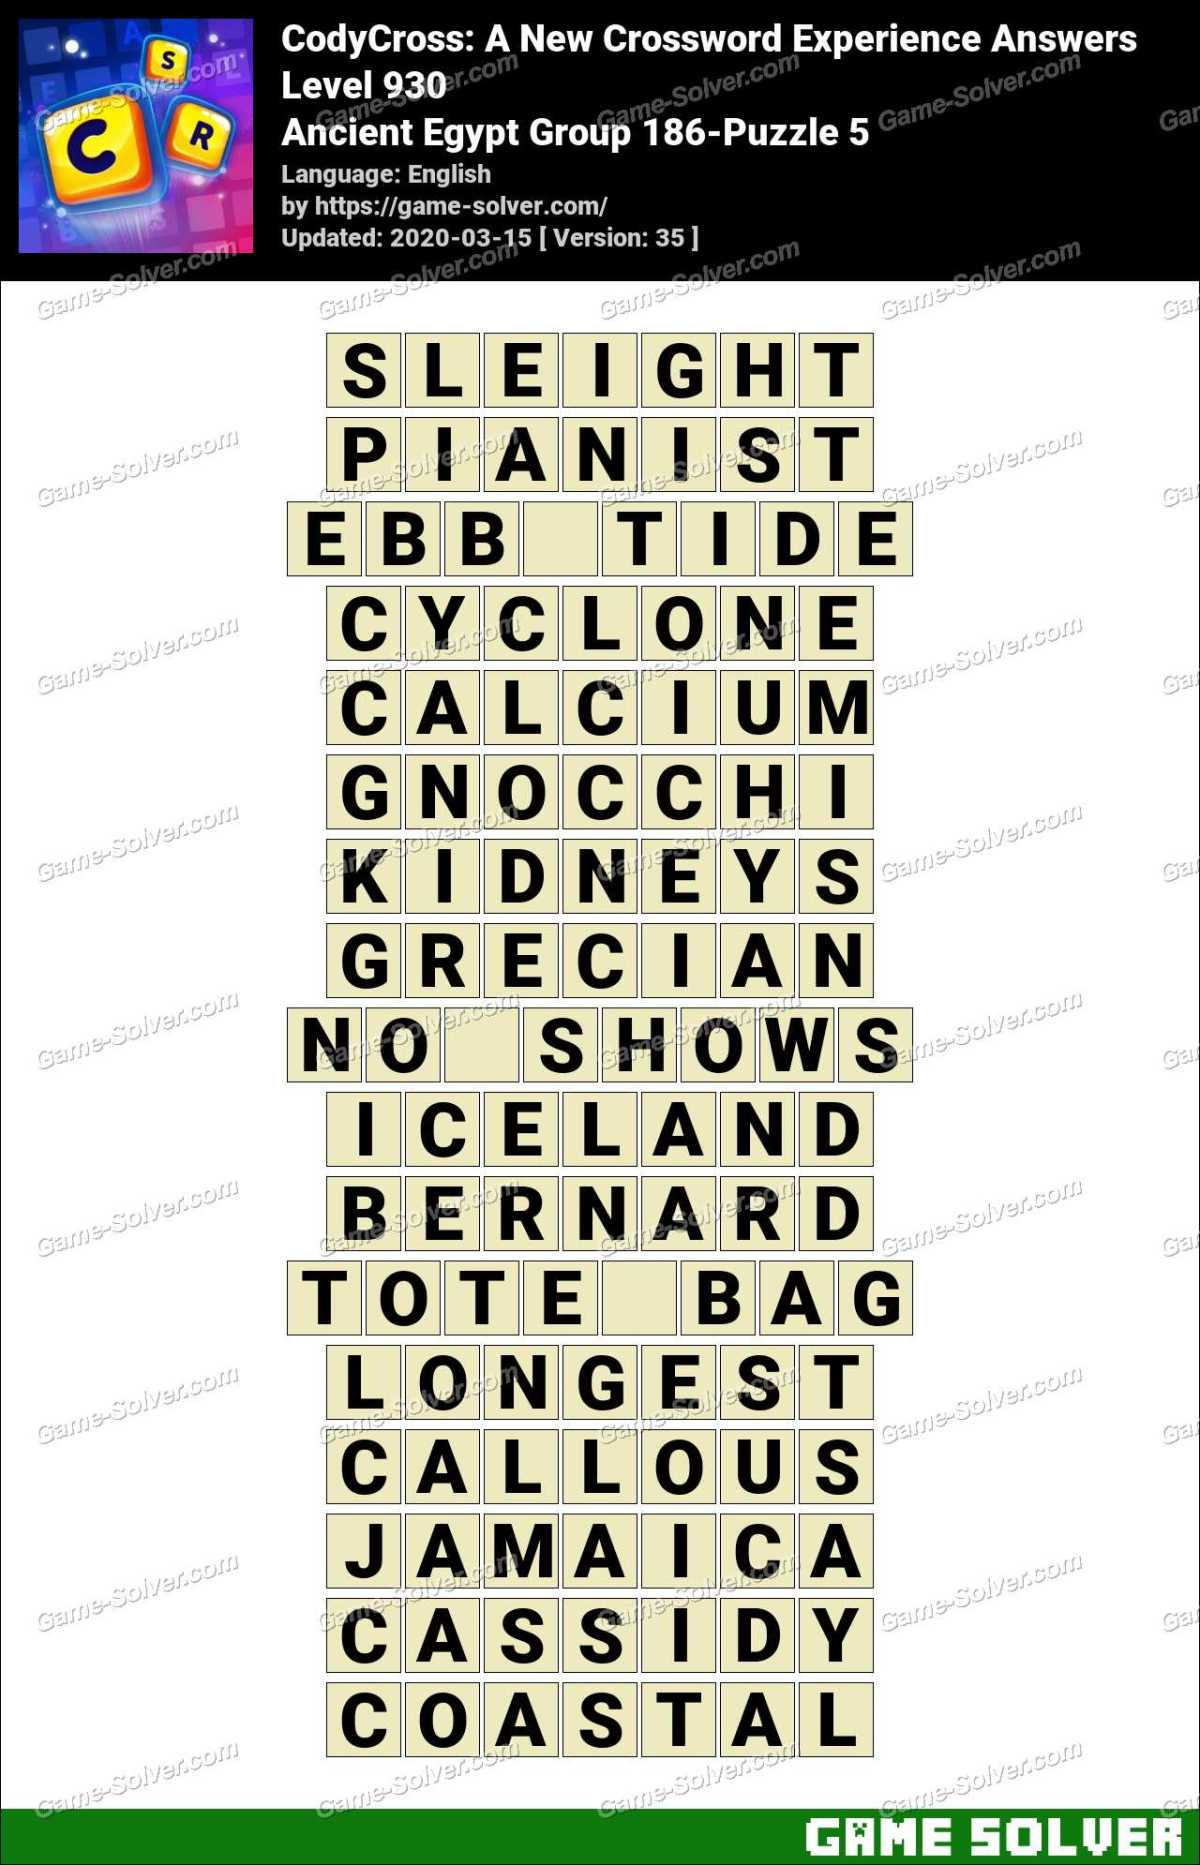 CodyCross Ancient Egypt Group 186-Puzzle 5 Answers